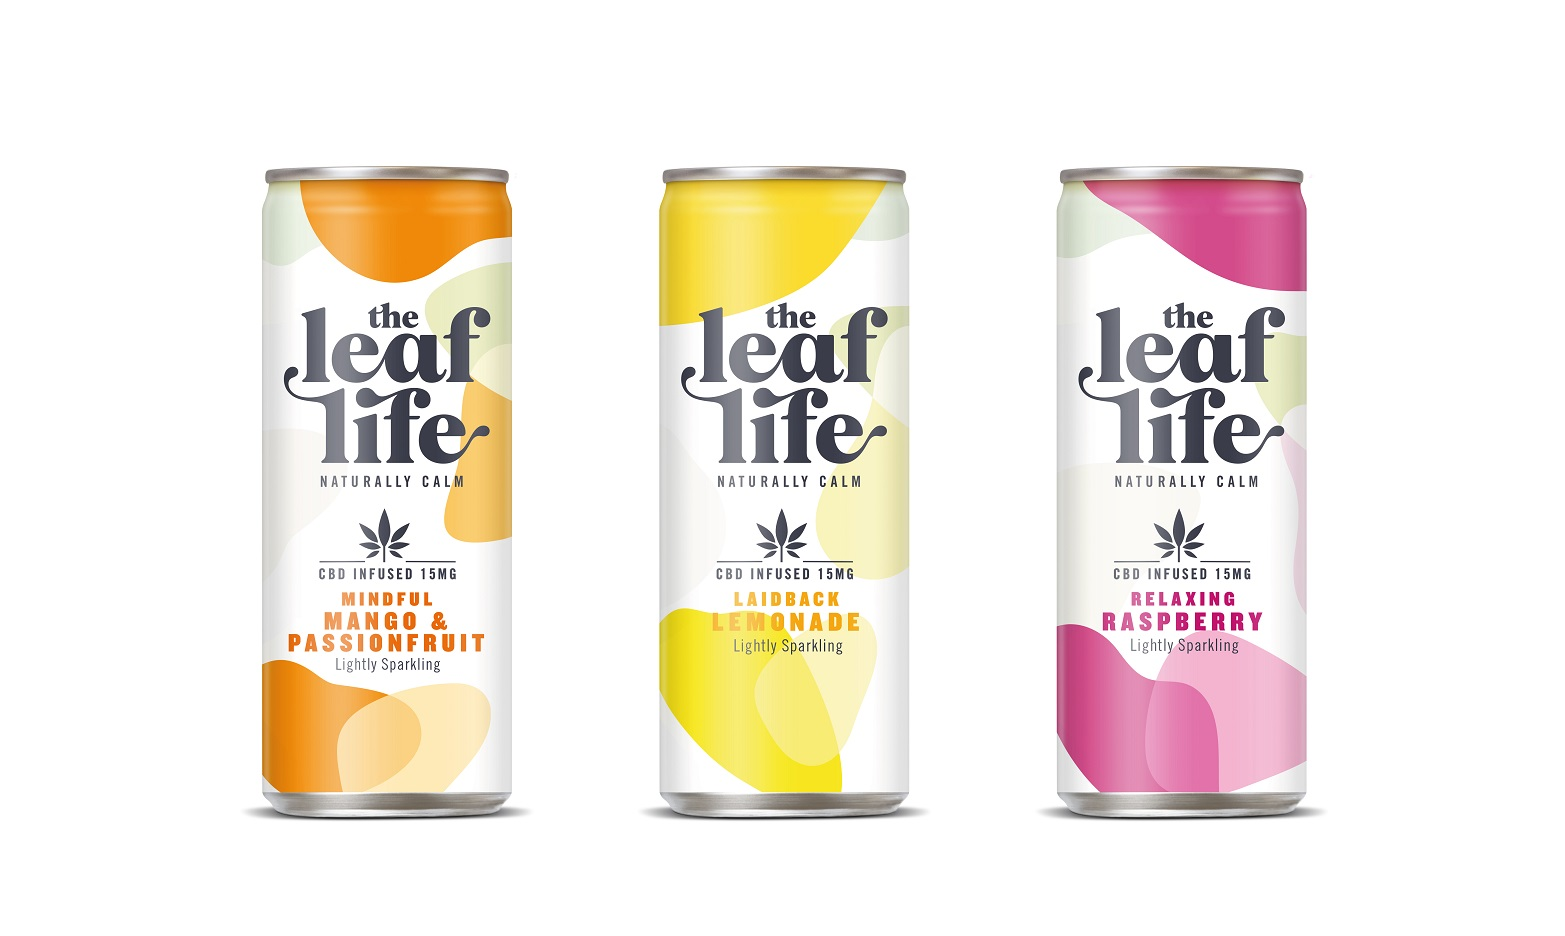 The Leaf Life - CBD Infused Functional Drink